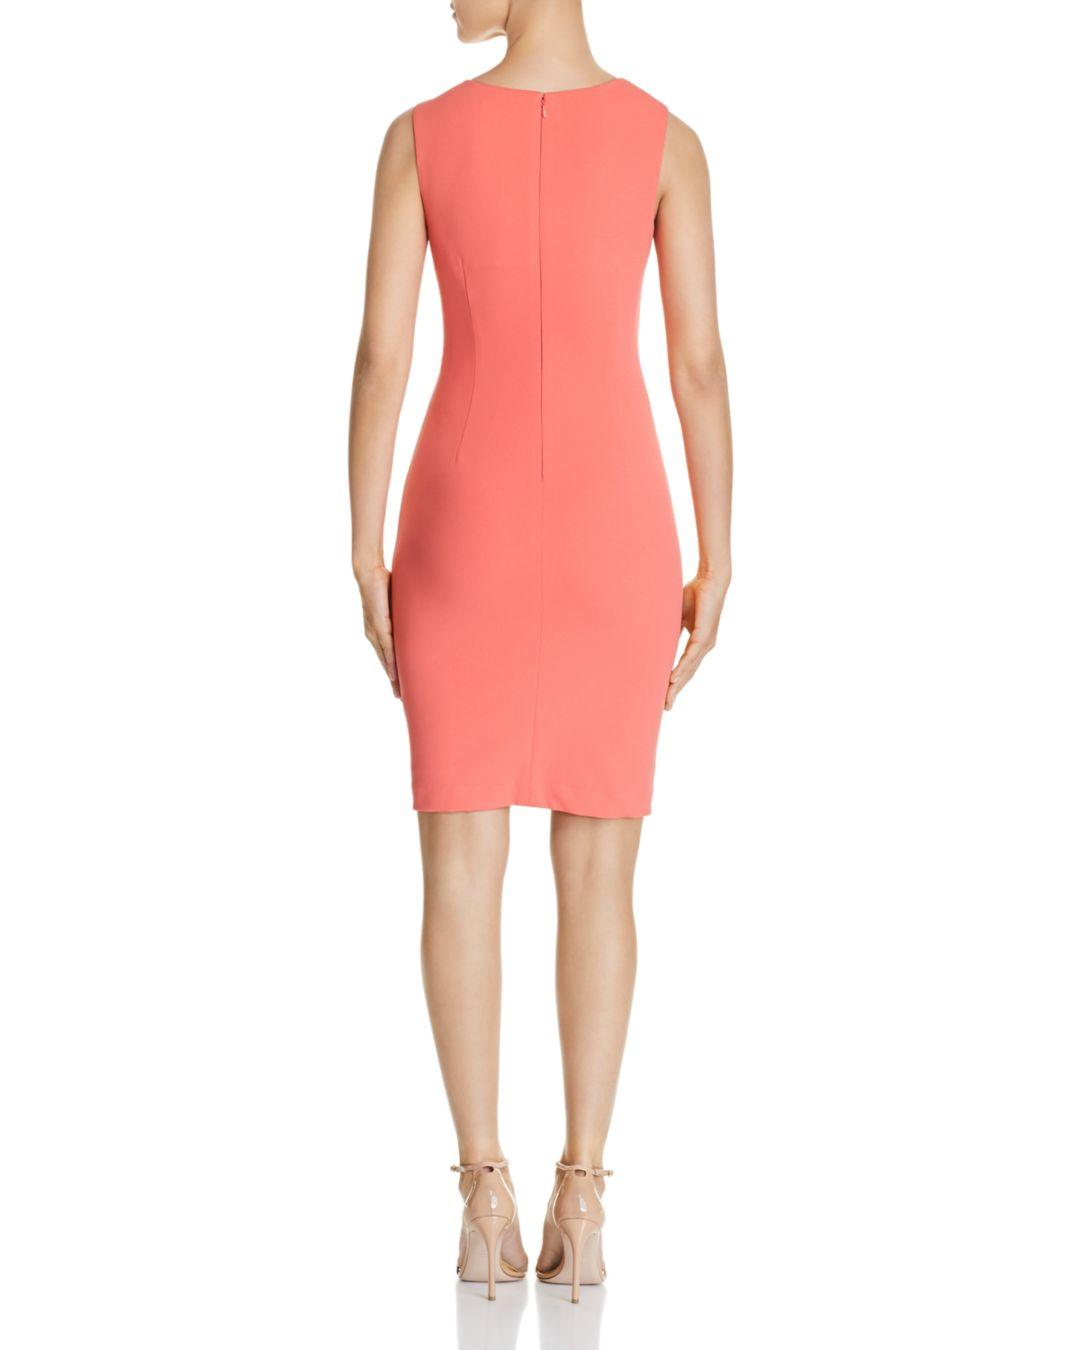 f295d3ed80d Lyst - Calvin Klein Embellished Sheath Dress in Pink